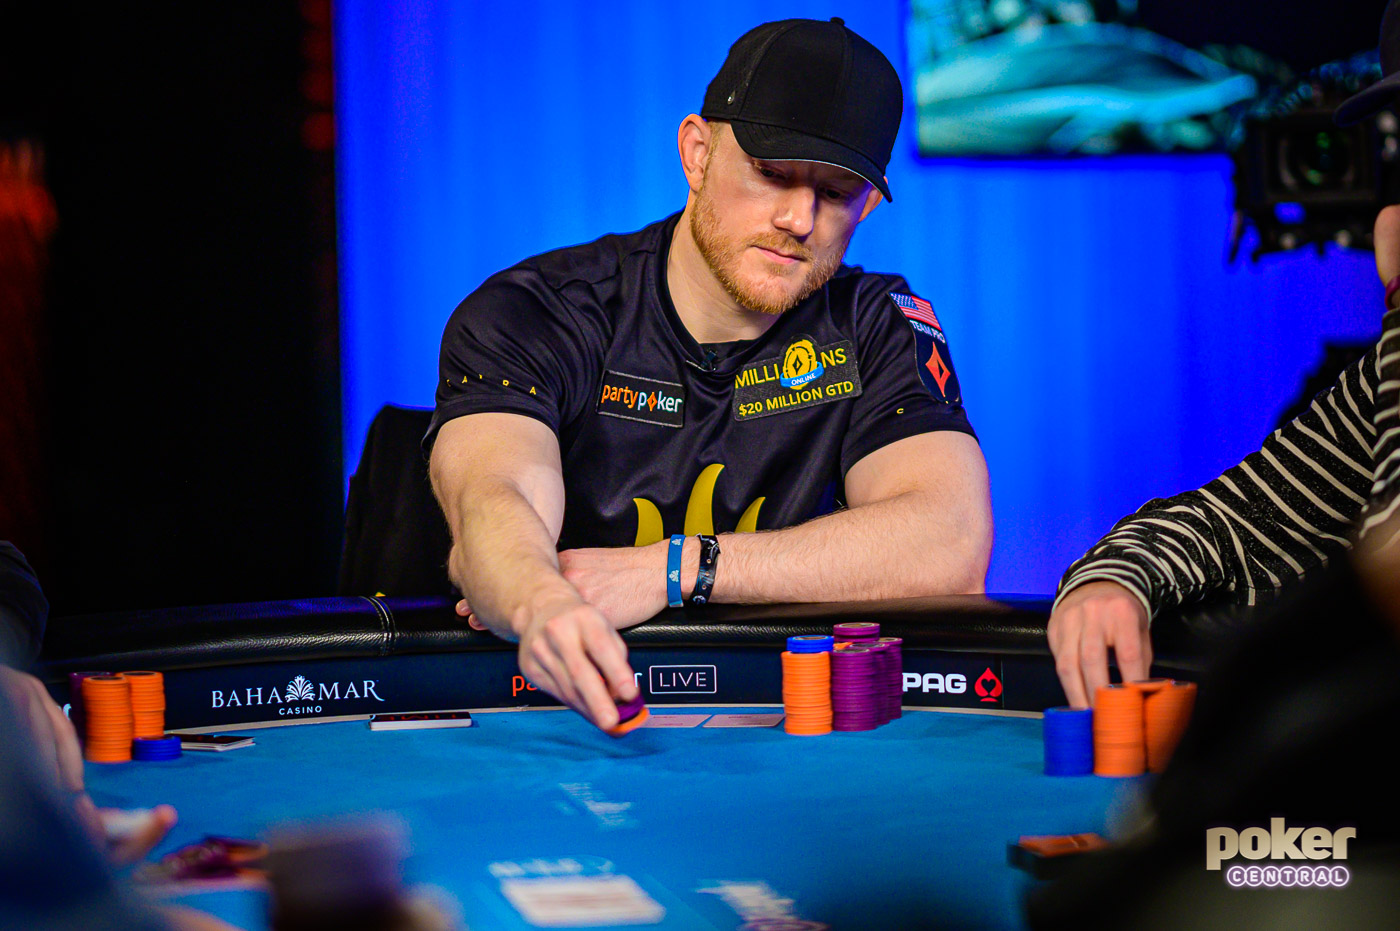 partypoker pro Jason Koon battled hard but fell short of the Super High Roller Bowl Bahamas crown.